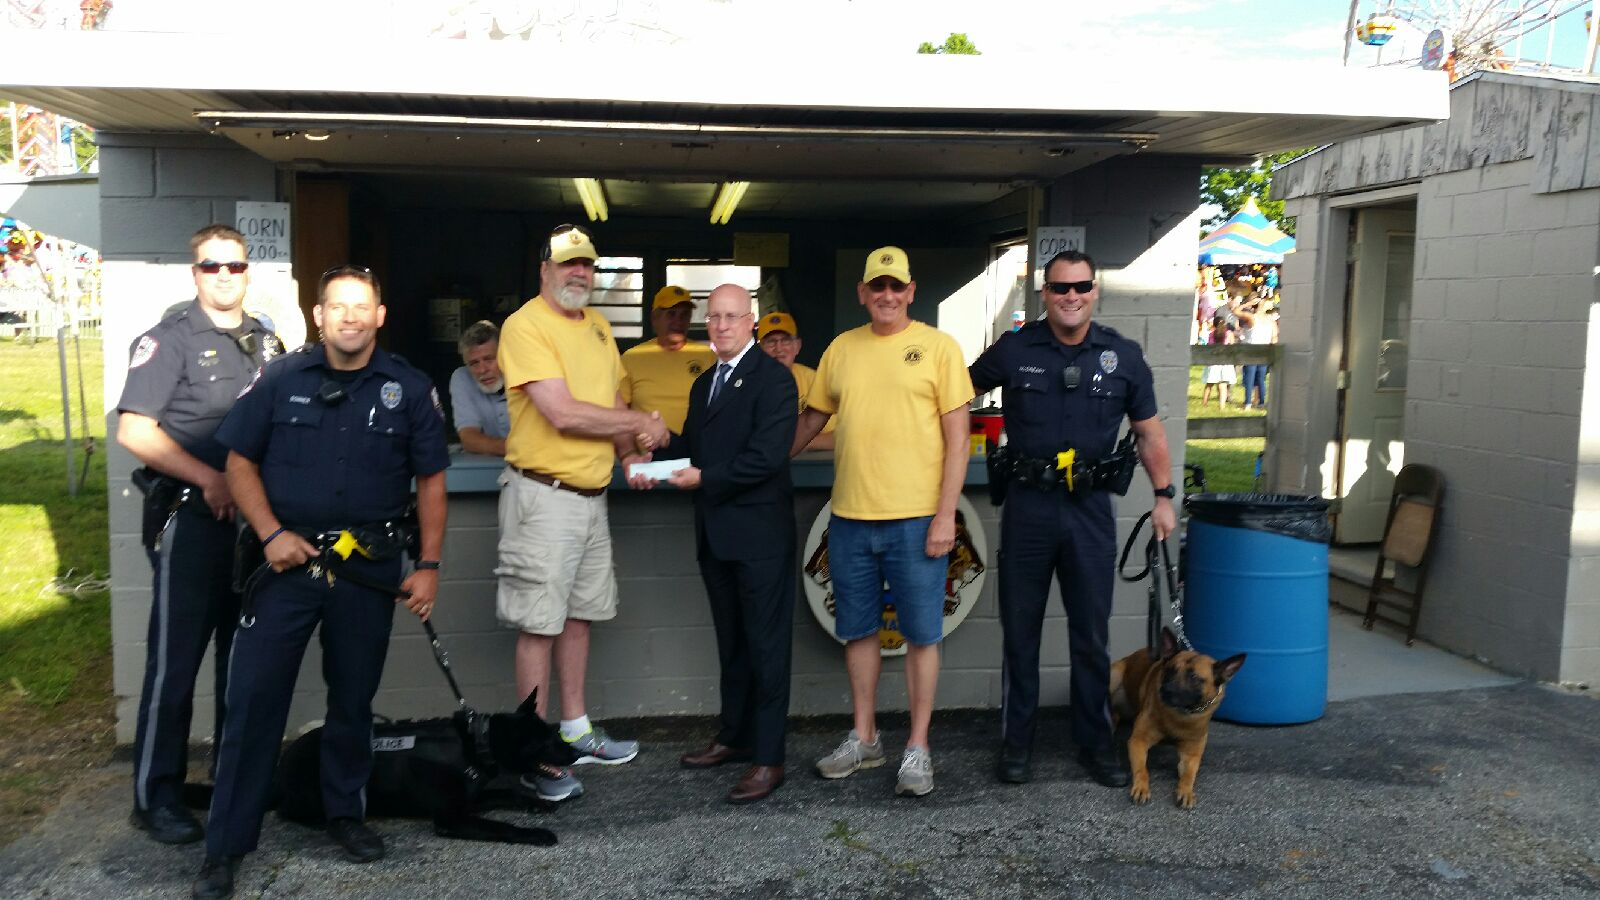 On June 8 th, 2017, Audubon Oaks Lions Club presents check to the Lower Providence Township Police K 9 Unit at the LP Firemen fair. Pictured are Officer Hubert, Officer Bonner with his K9 partner Brutus, Lion Paul Chantry, Chief Stanley Turtle, Lion Dan Hummel, Officer McCreary with K9 partner Kane. Back row Lions G Smith, P LeBoutillier, C Pate.